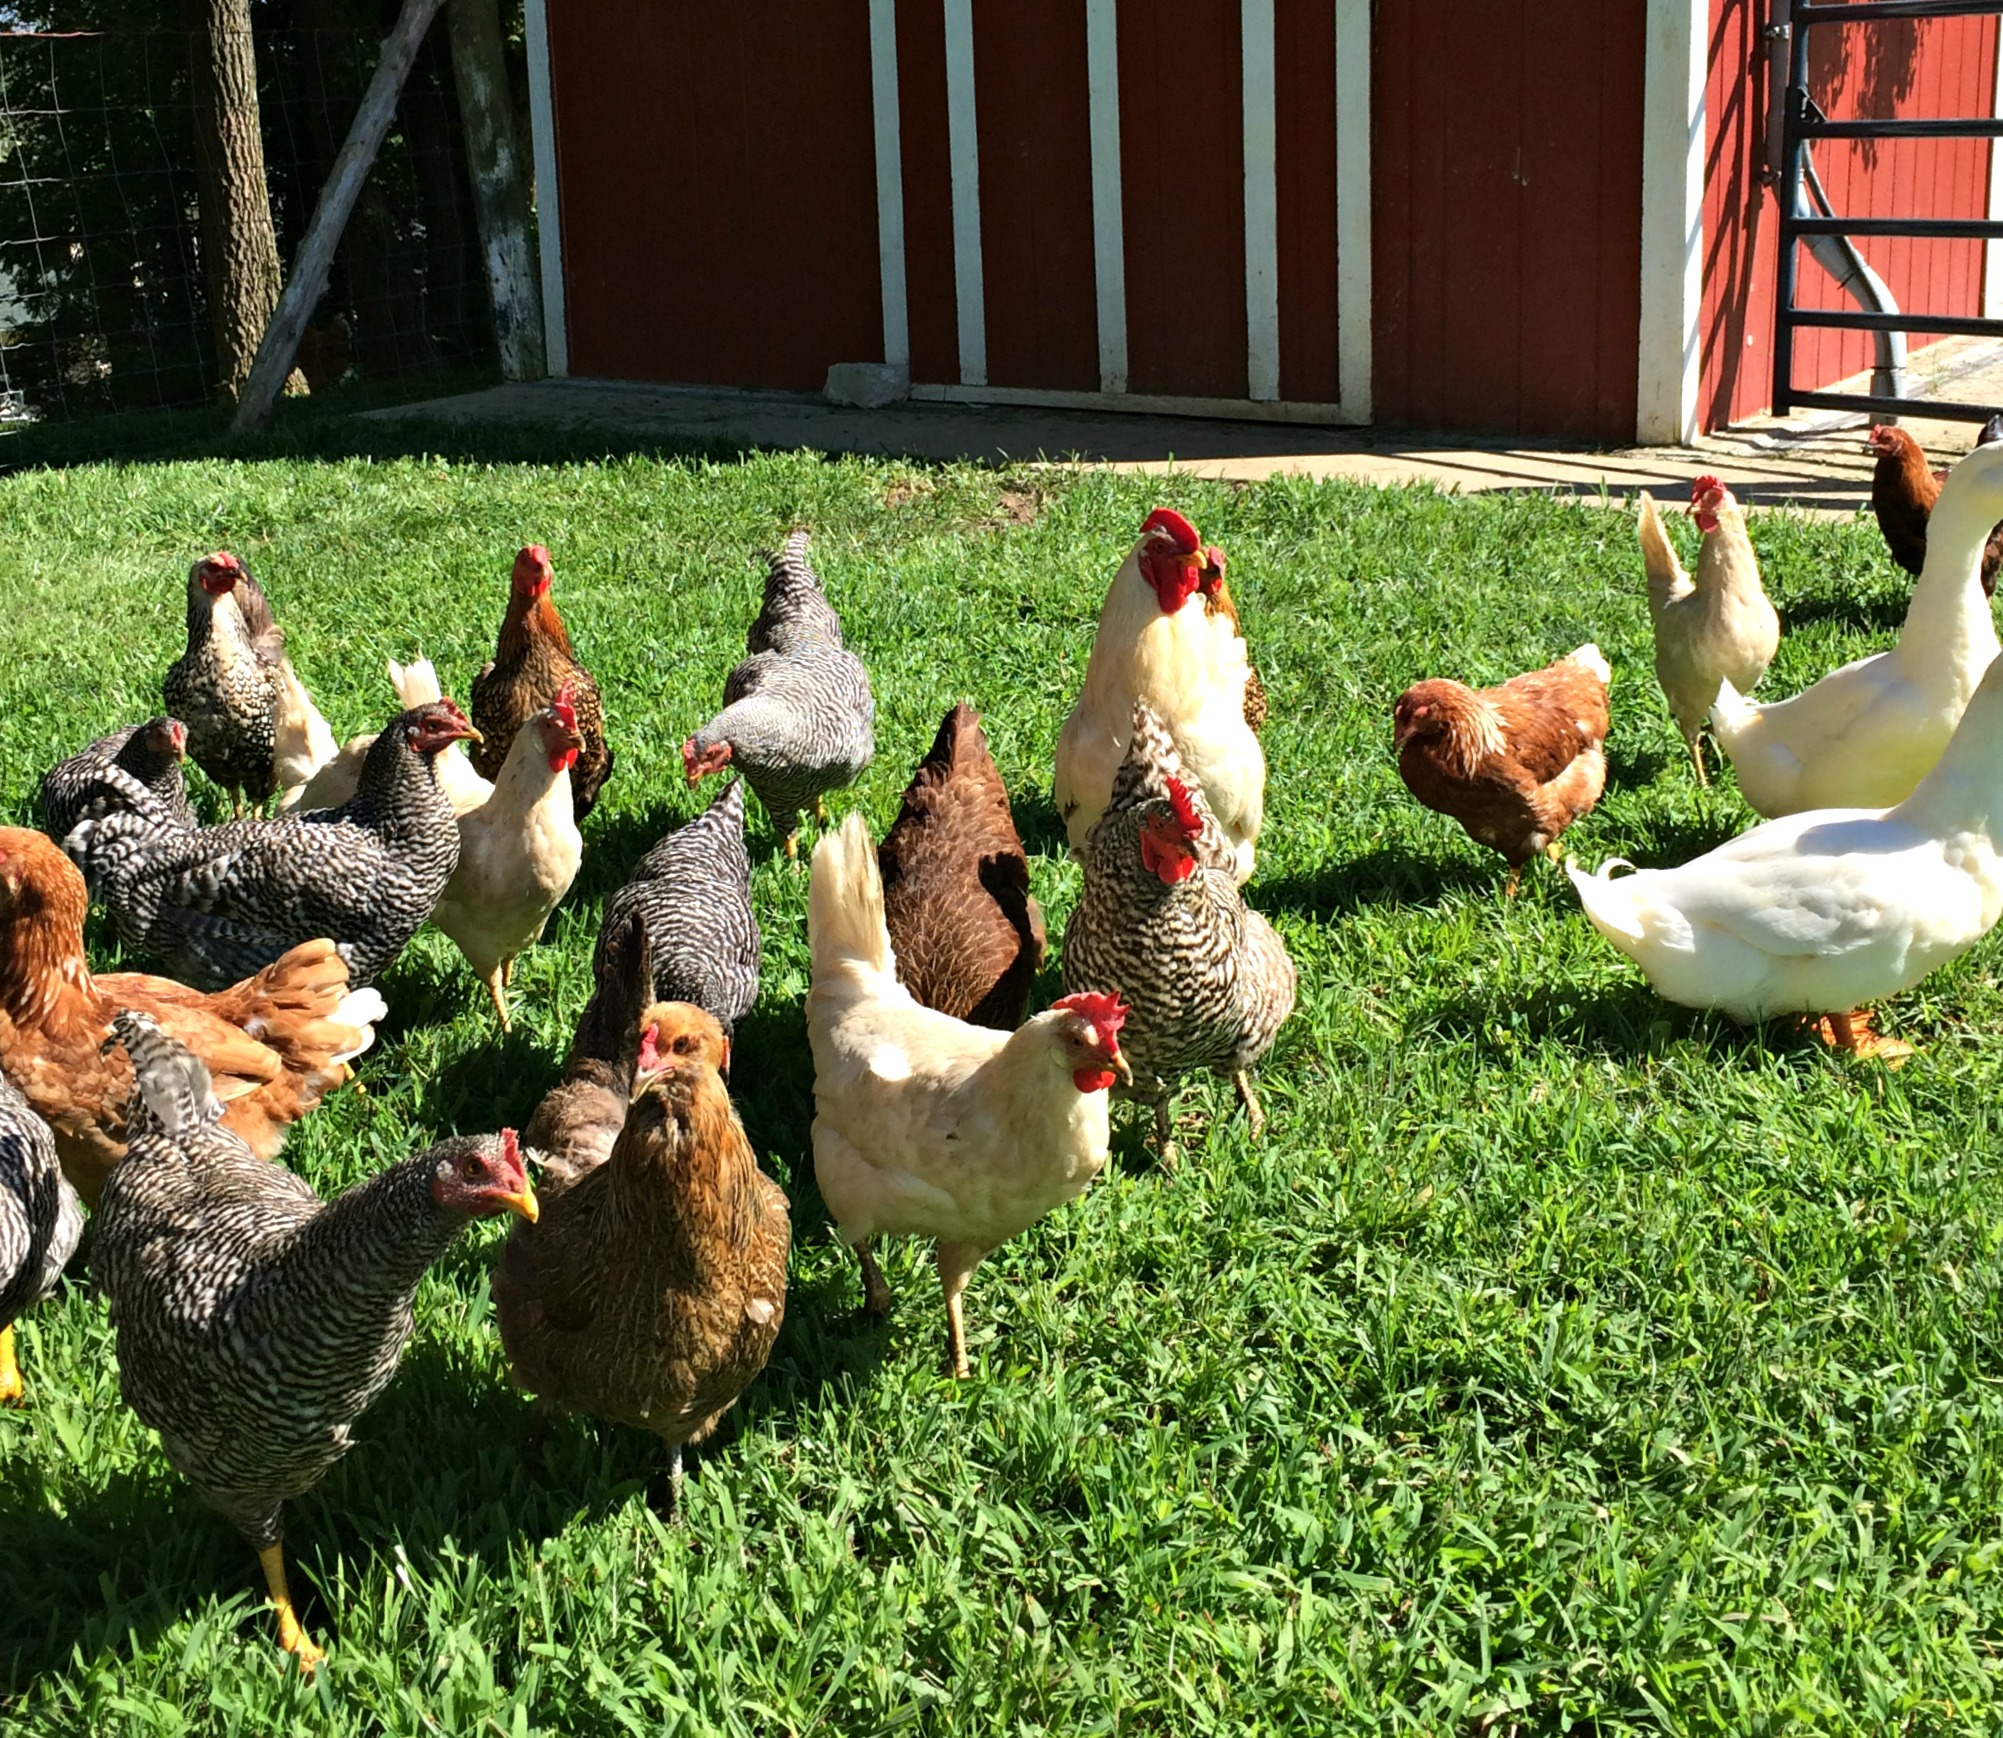 How To Keep Chickens Out Of The Garden Farm Fresh For Life Real Food For Health Wellness